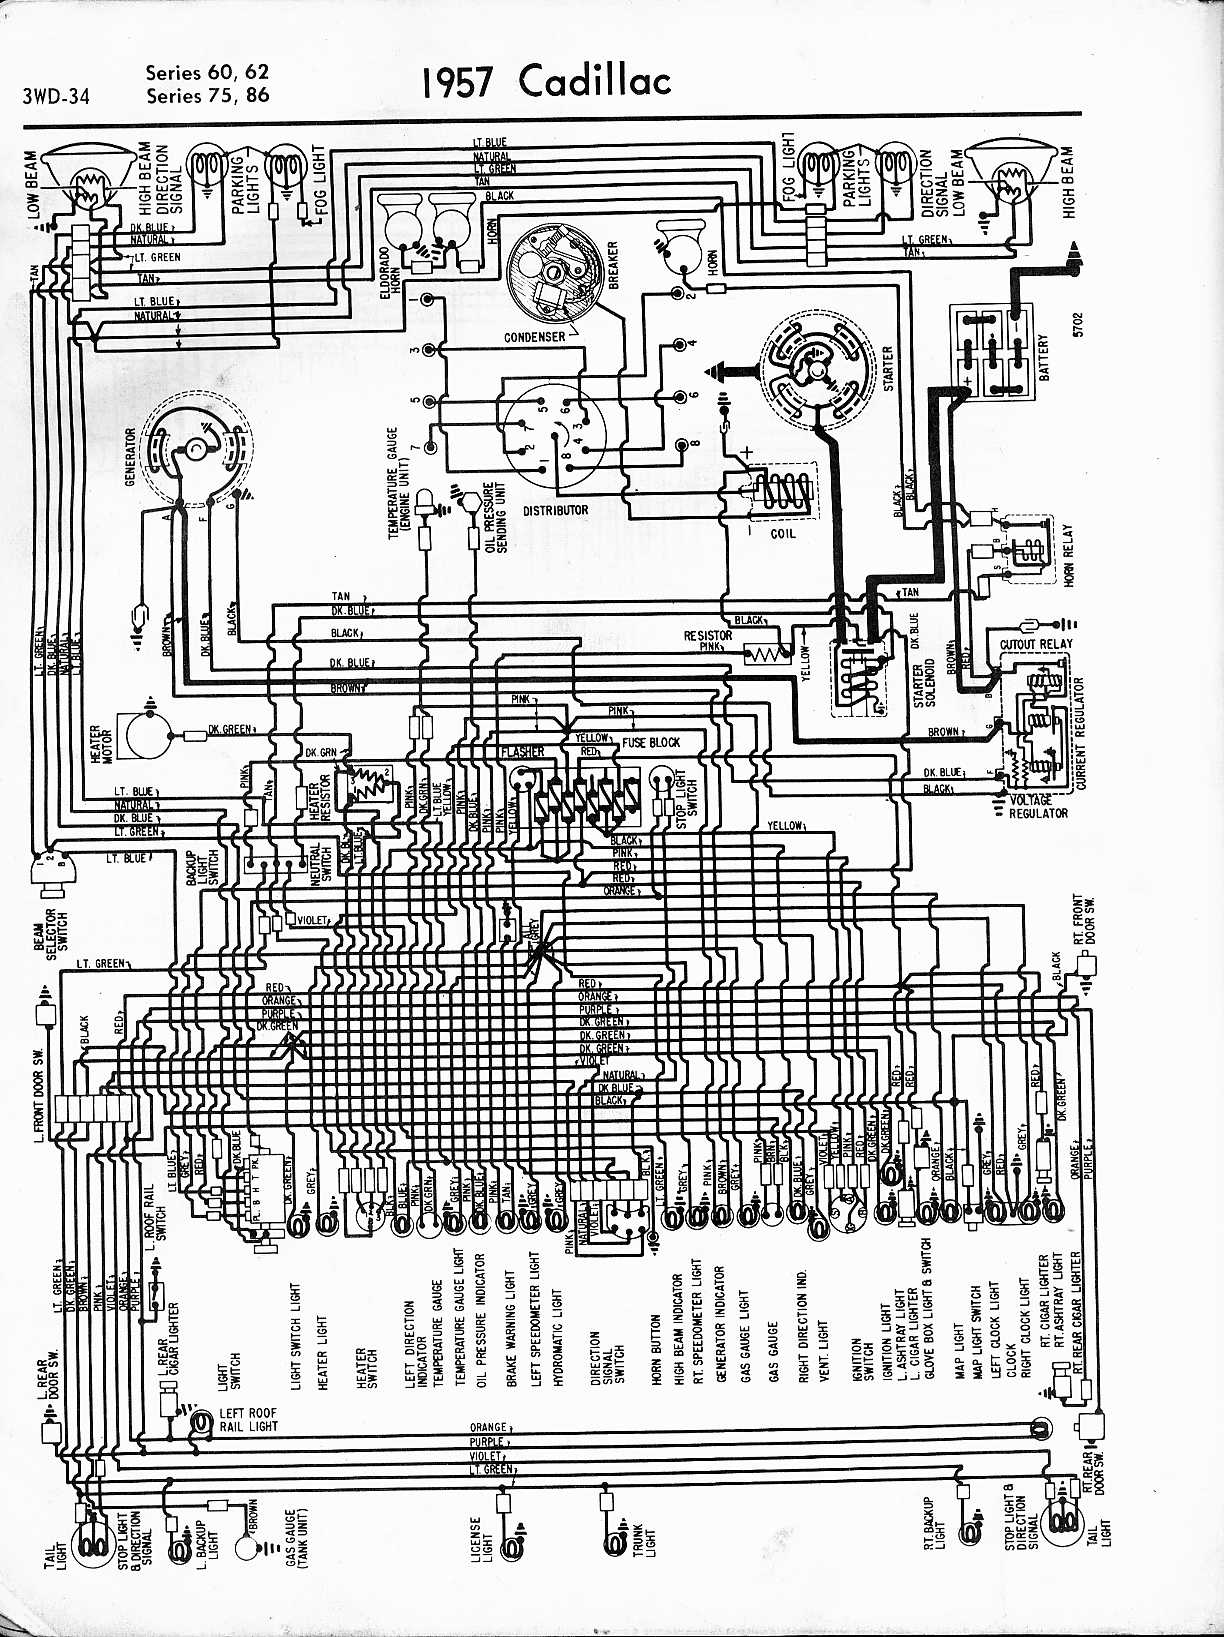 Cadillac Wiring Diagram Diagrams 11796d12469976383wayswitchdiagramschematic3way6lightsjpg 1957 1965 Rh Oldcarmanualproject Com 1955 Autozone